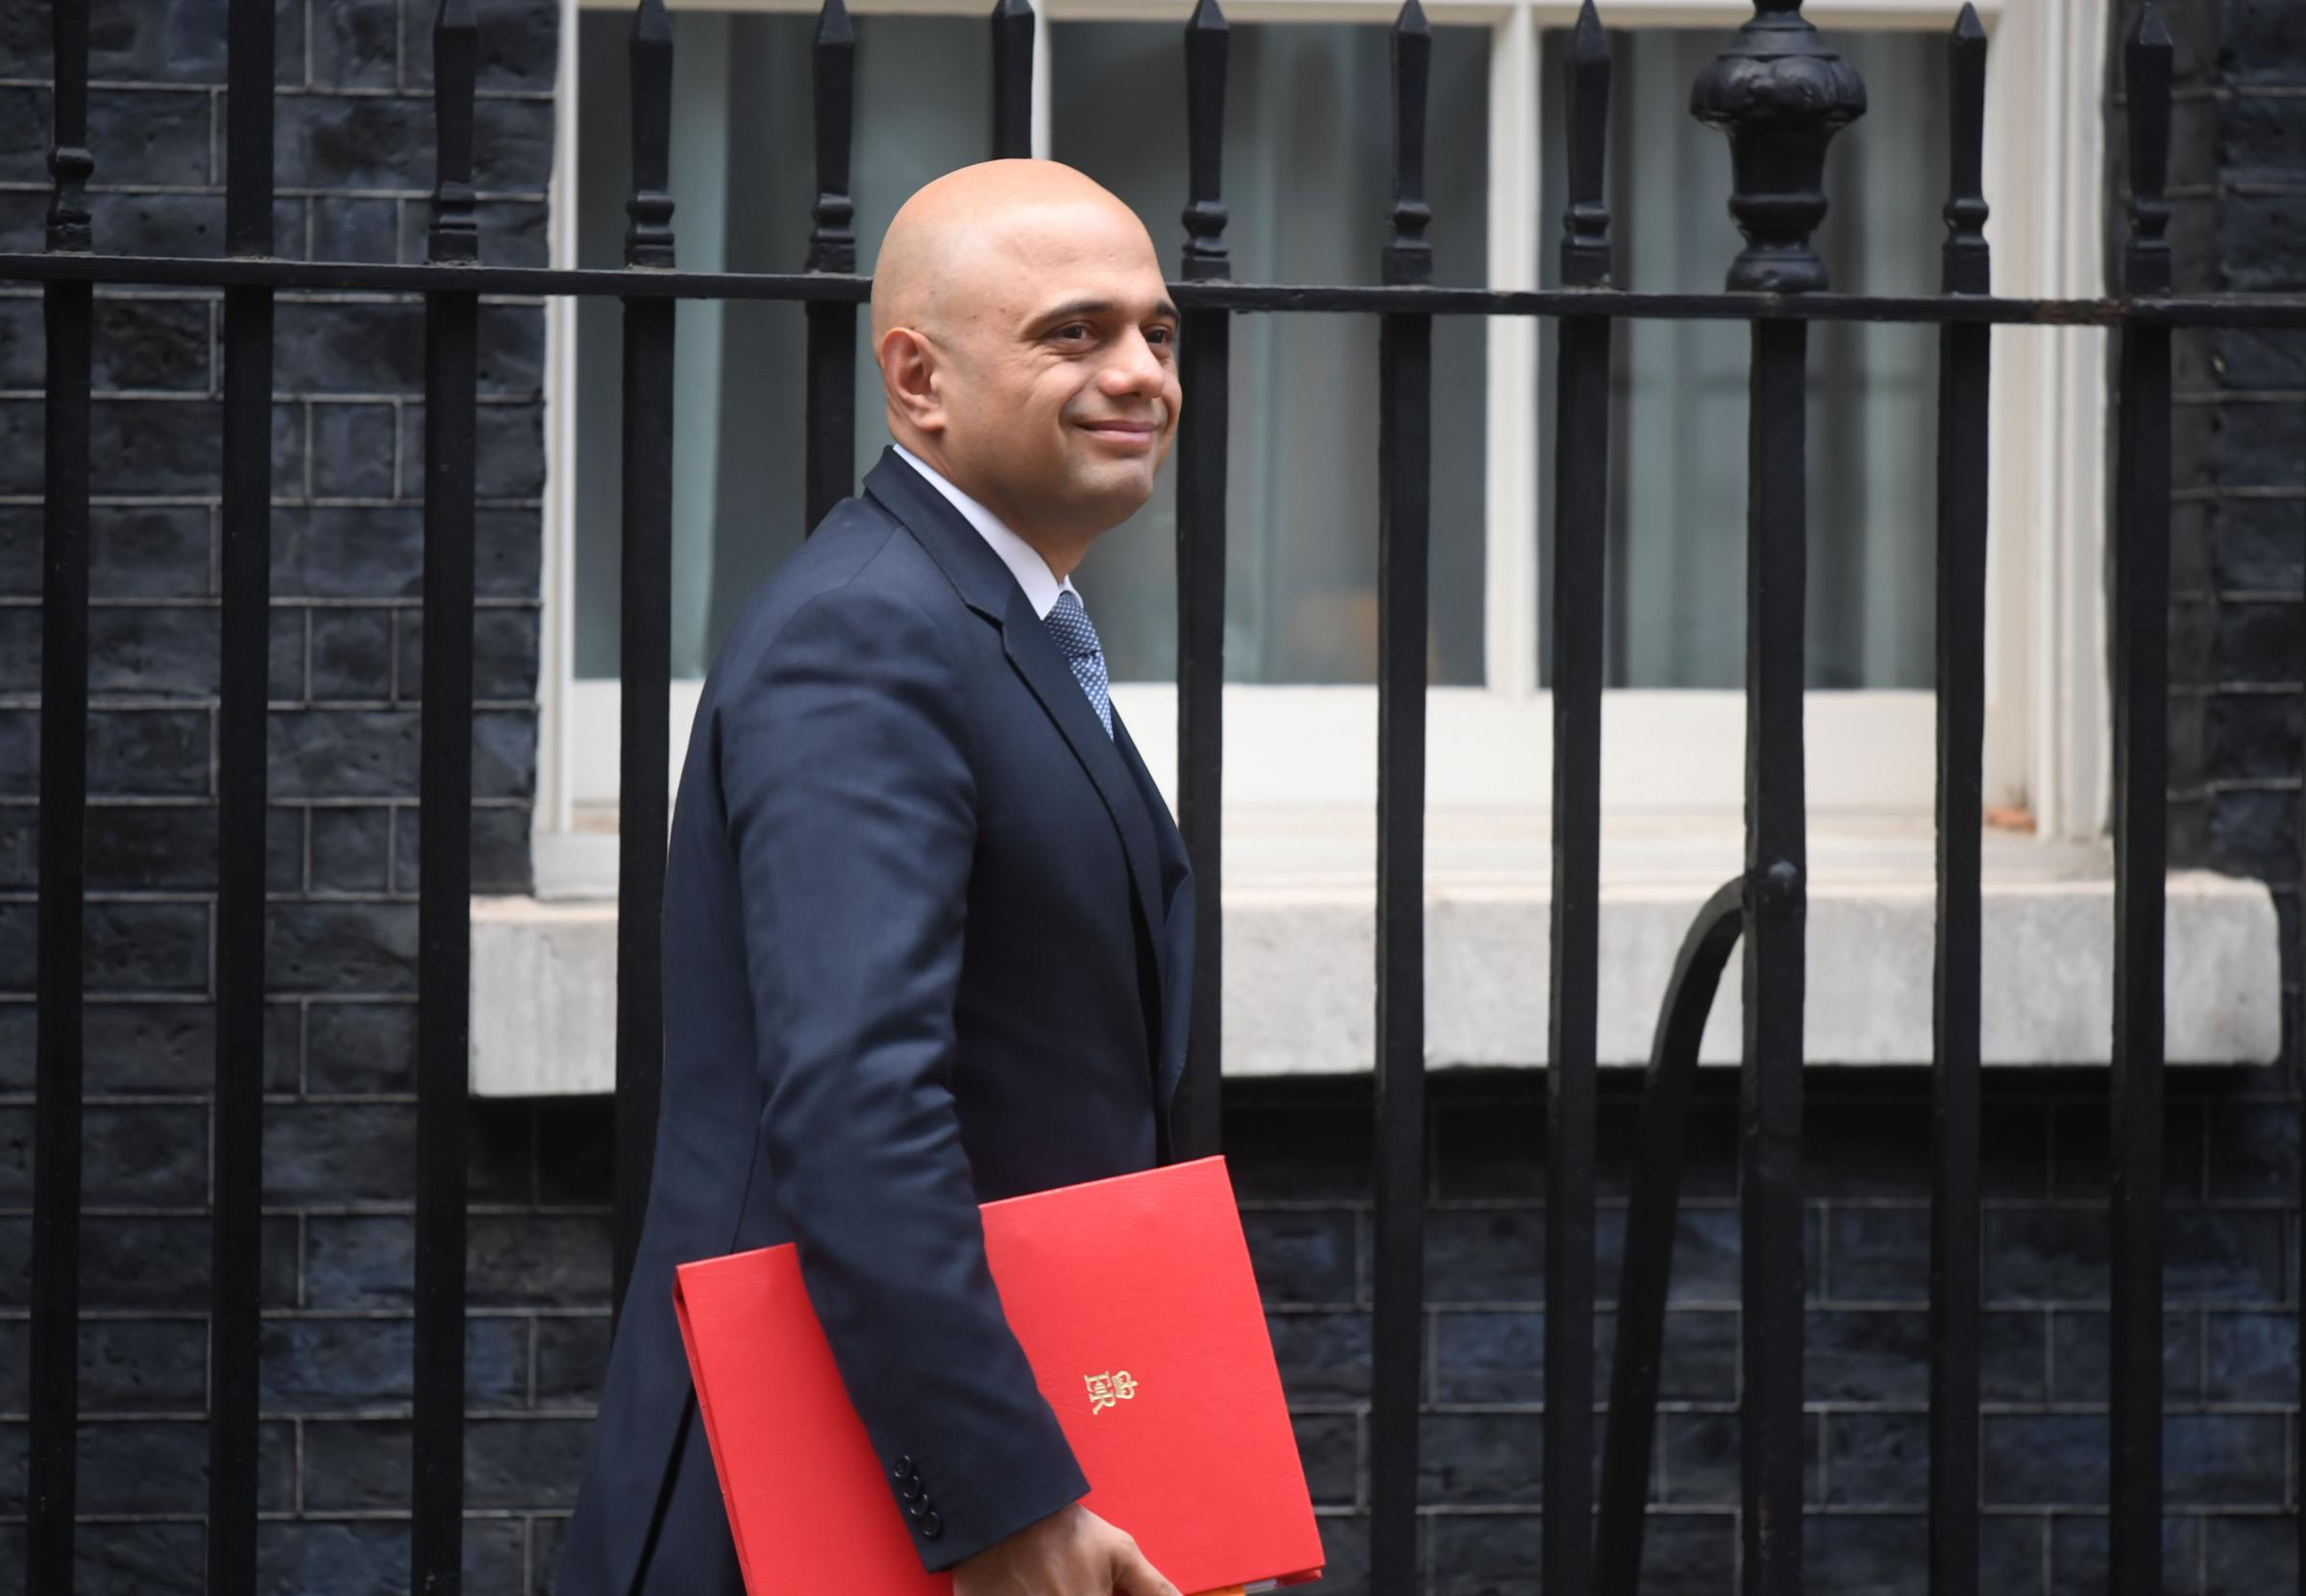 Bromsgrove MP Sajid Javid after the emergency Cabinet meeting on Thursday (Photo by Victoria Jones/PA Wire/PA Images)